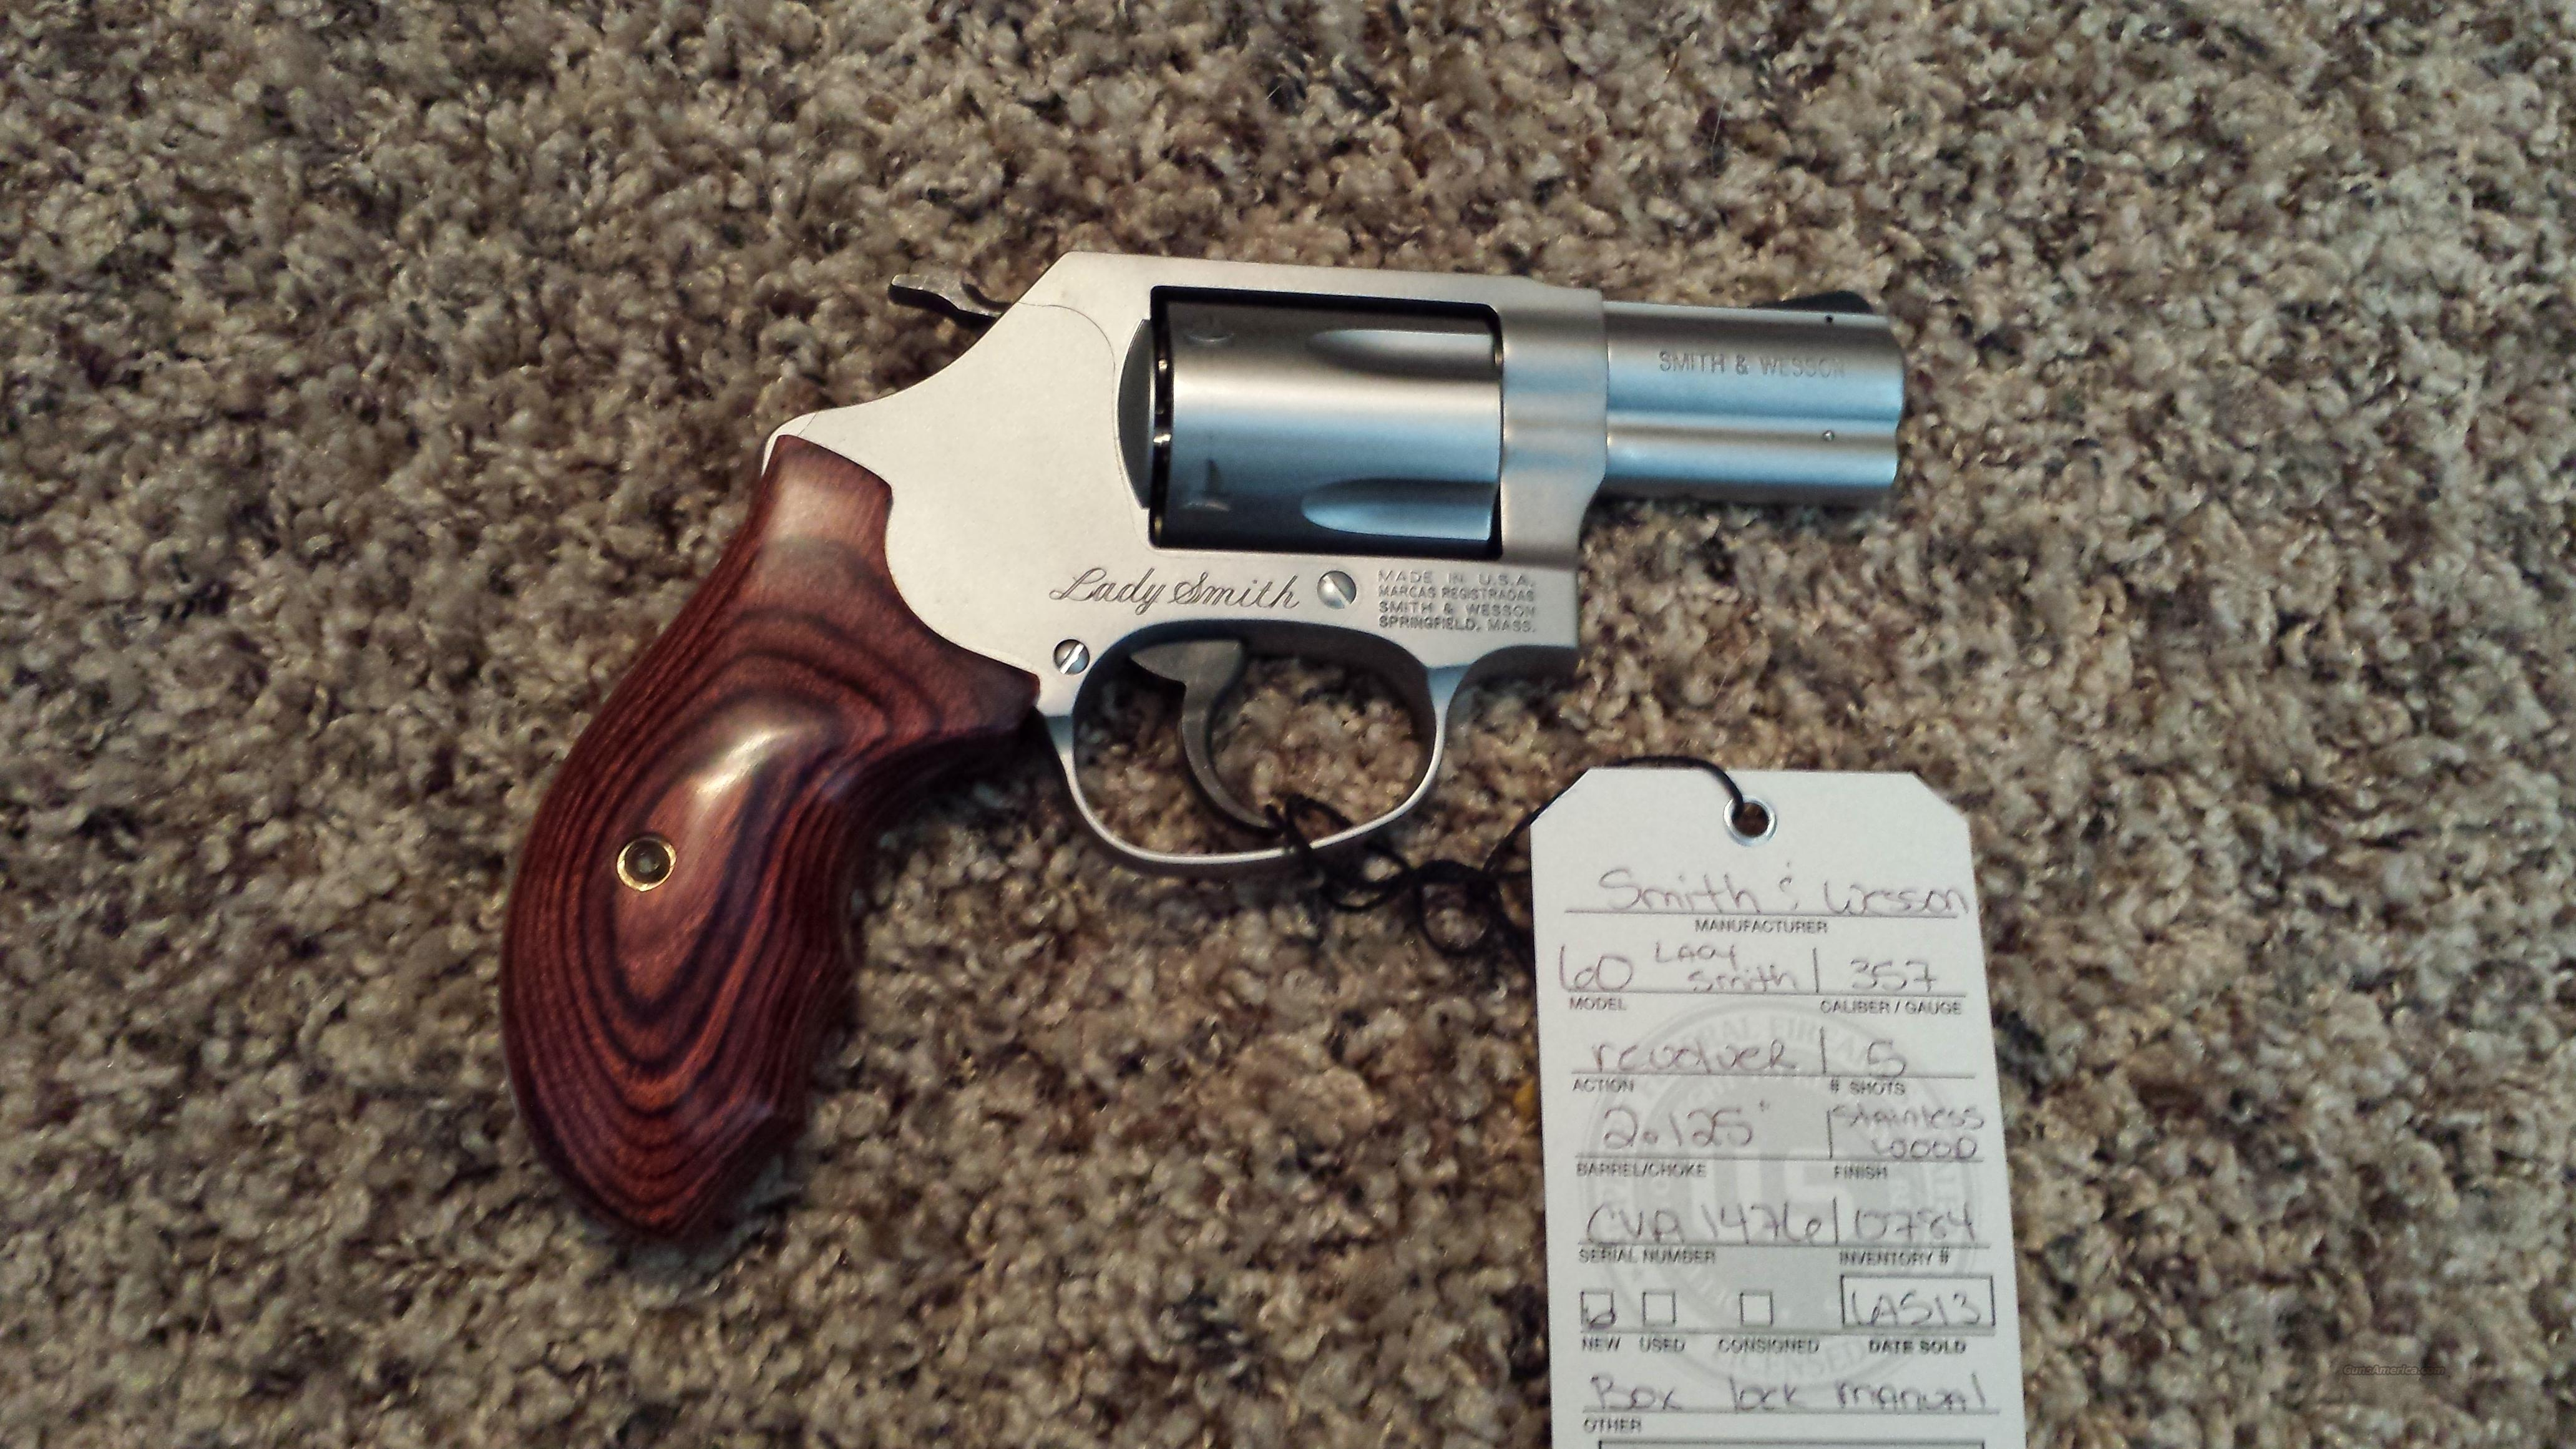 Smith & Wesson S&W 60 Lady Smith 357 Mag .38 Spl  Guns > Pistols > Smith & Wesson Revolvers > Full Frame Revolver